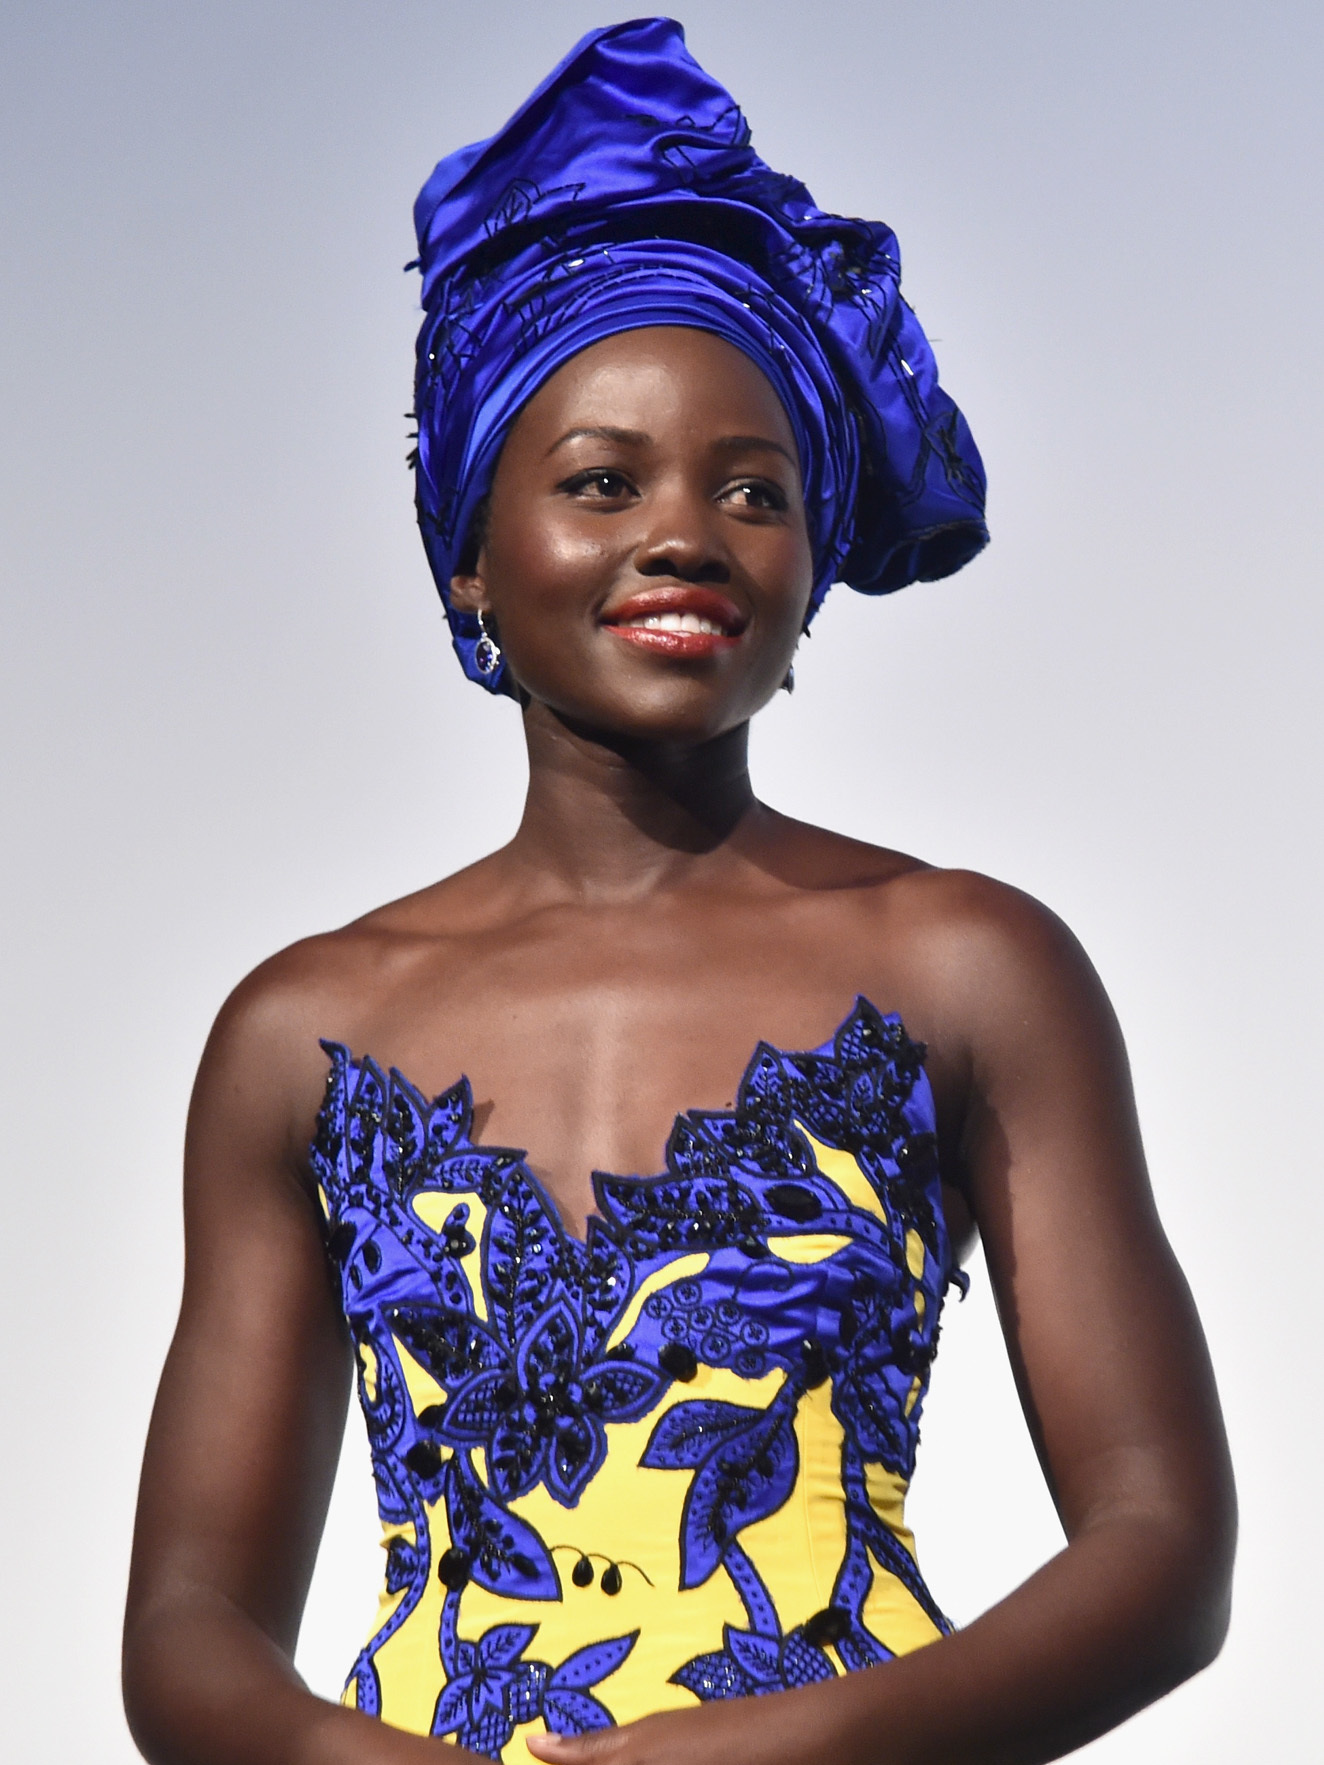 Lupita Nyong'o, Who Designed Your Nigerian-Style Head Tie?